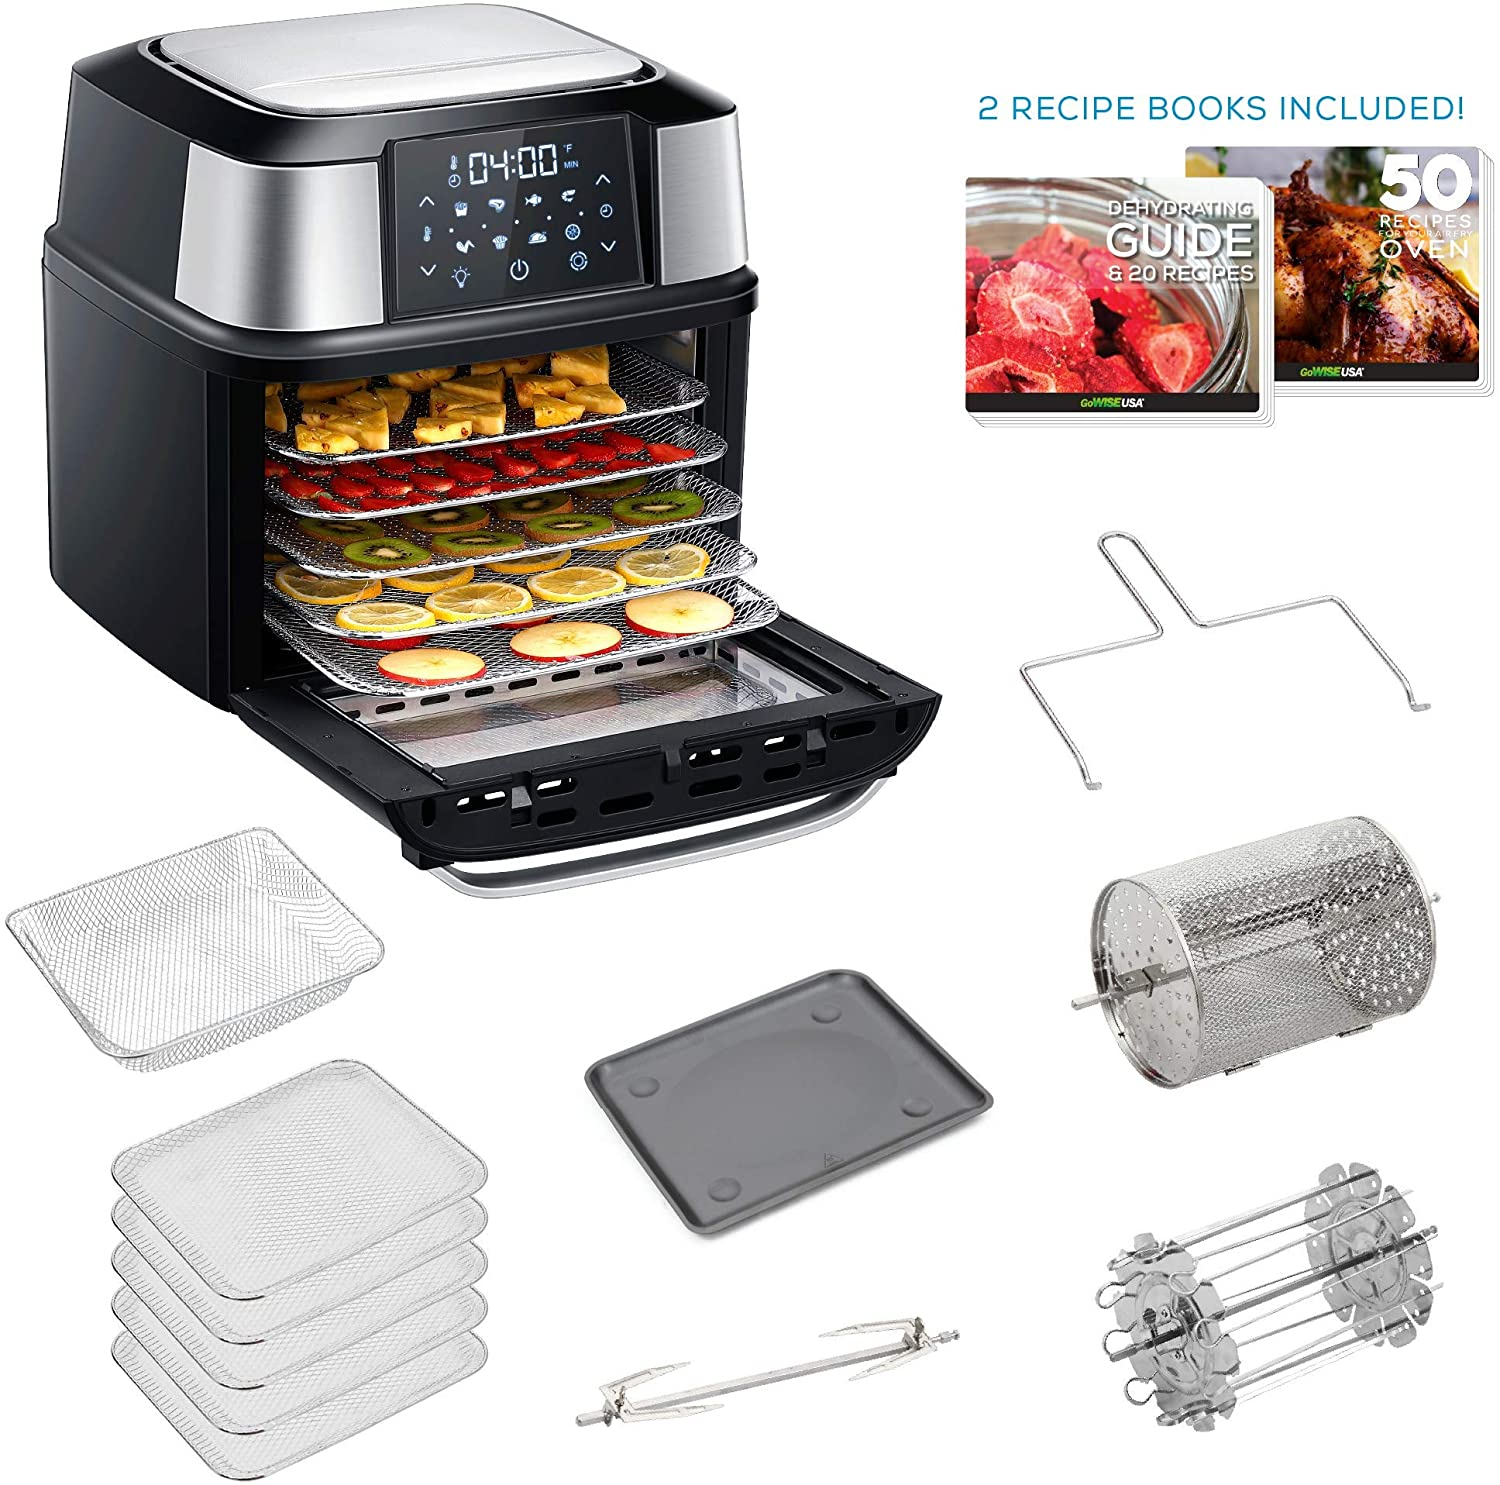 GoWISE USA Food Dehydrator and Air Fryer - 5 Drying Trays plus 6 Additional Accessories - Adjustable Time & Temperature Control - Perfect for Drying Beef Jerky, Herbs, Fruit, Vegetables, Dog Treats,